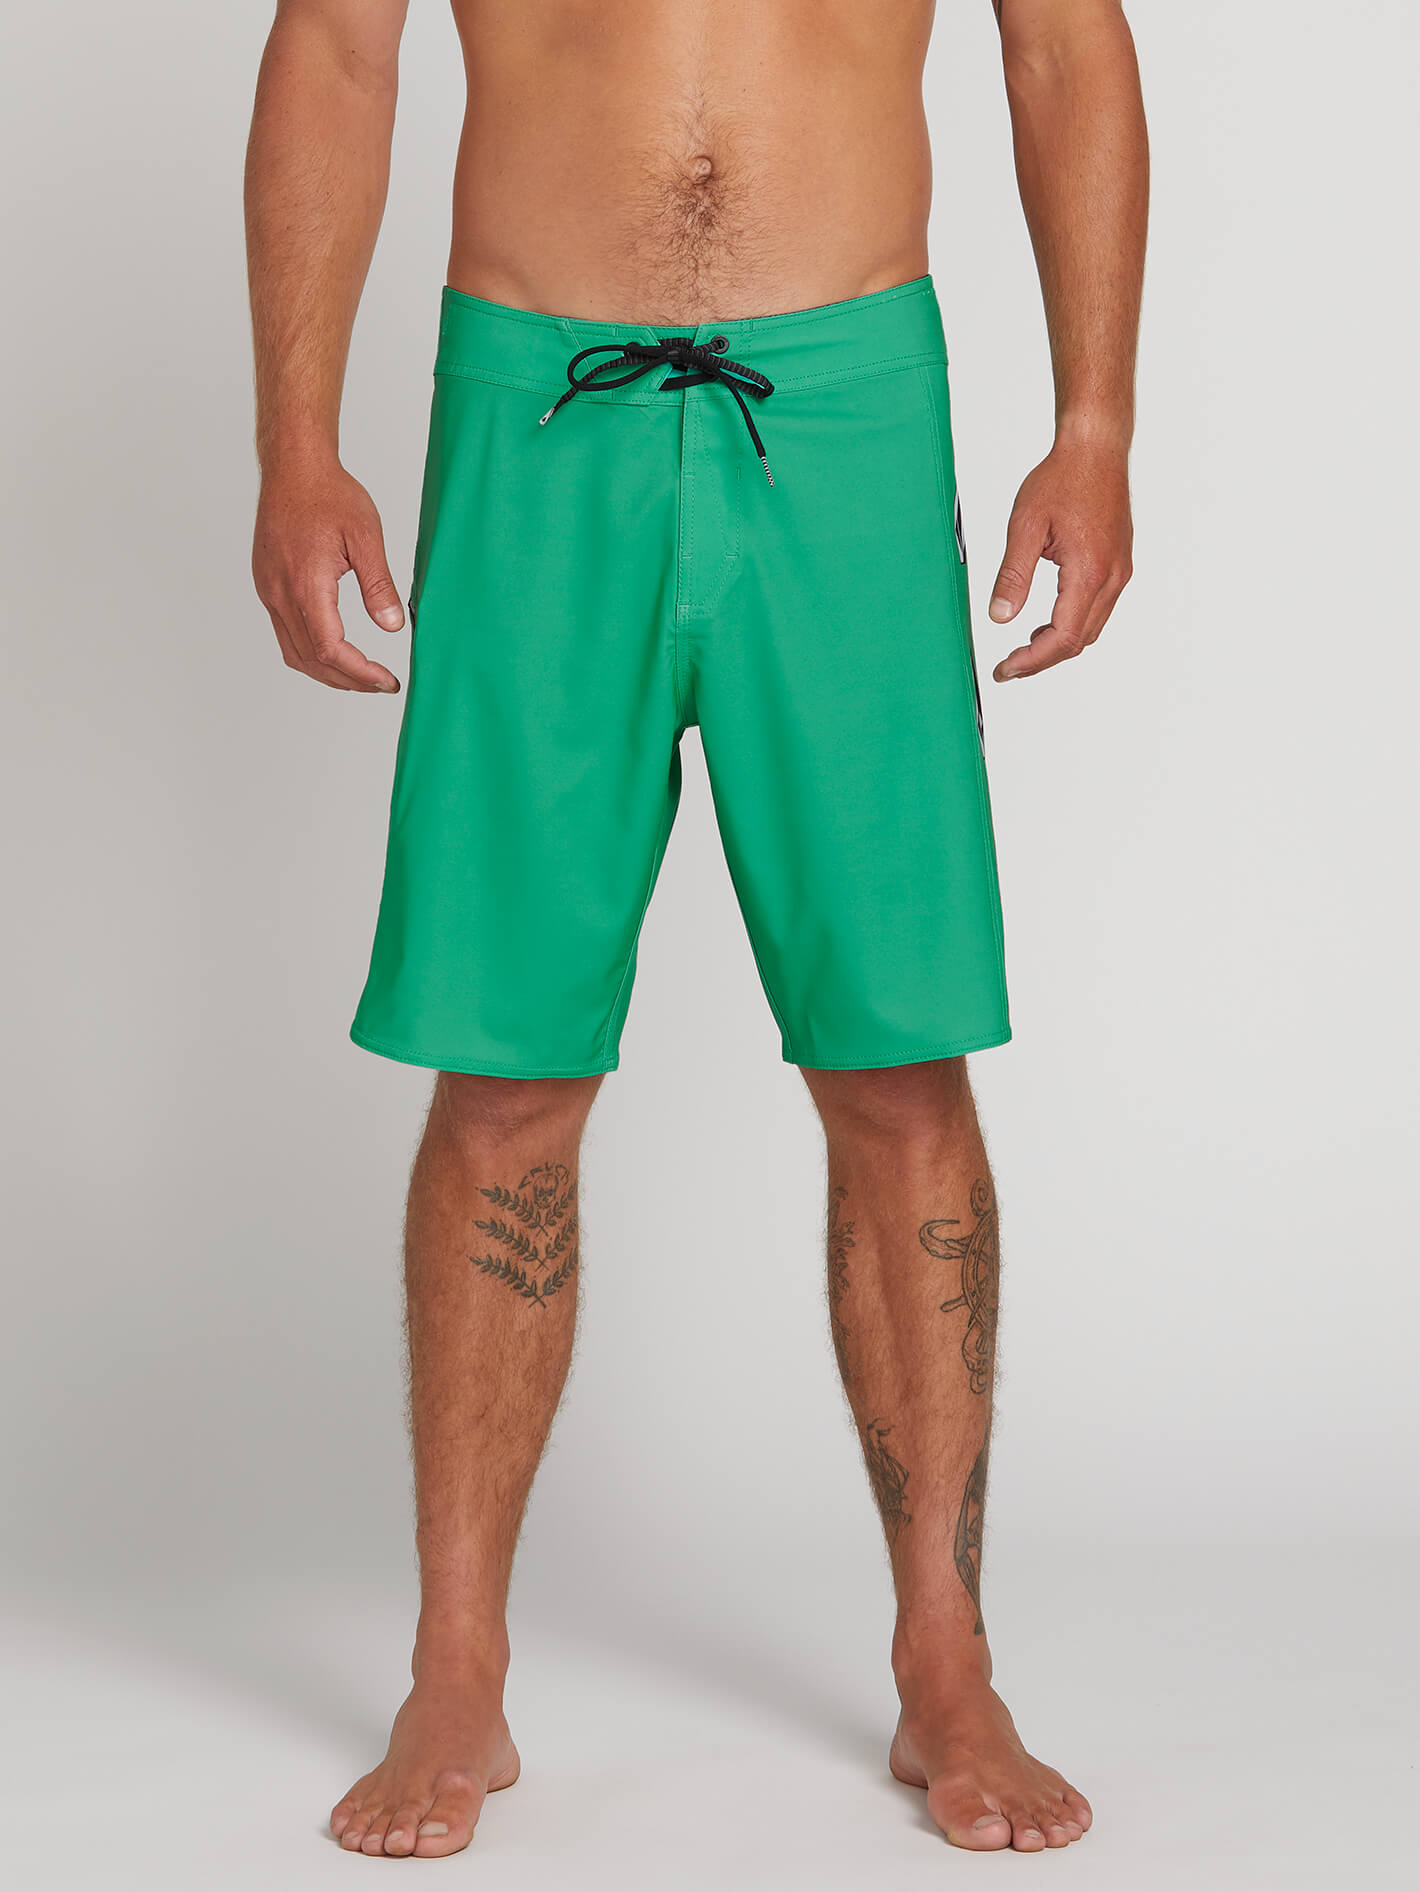 e34fb37d13af1 Deadly Stones Boardshorts in WINTERGREEN - Alternative View